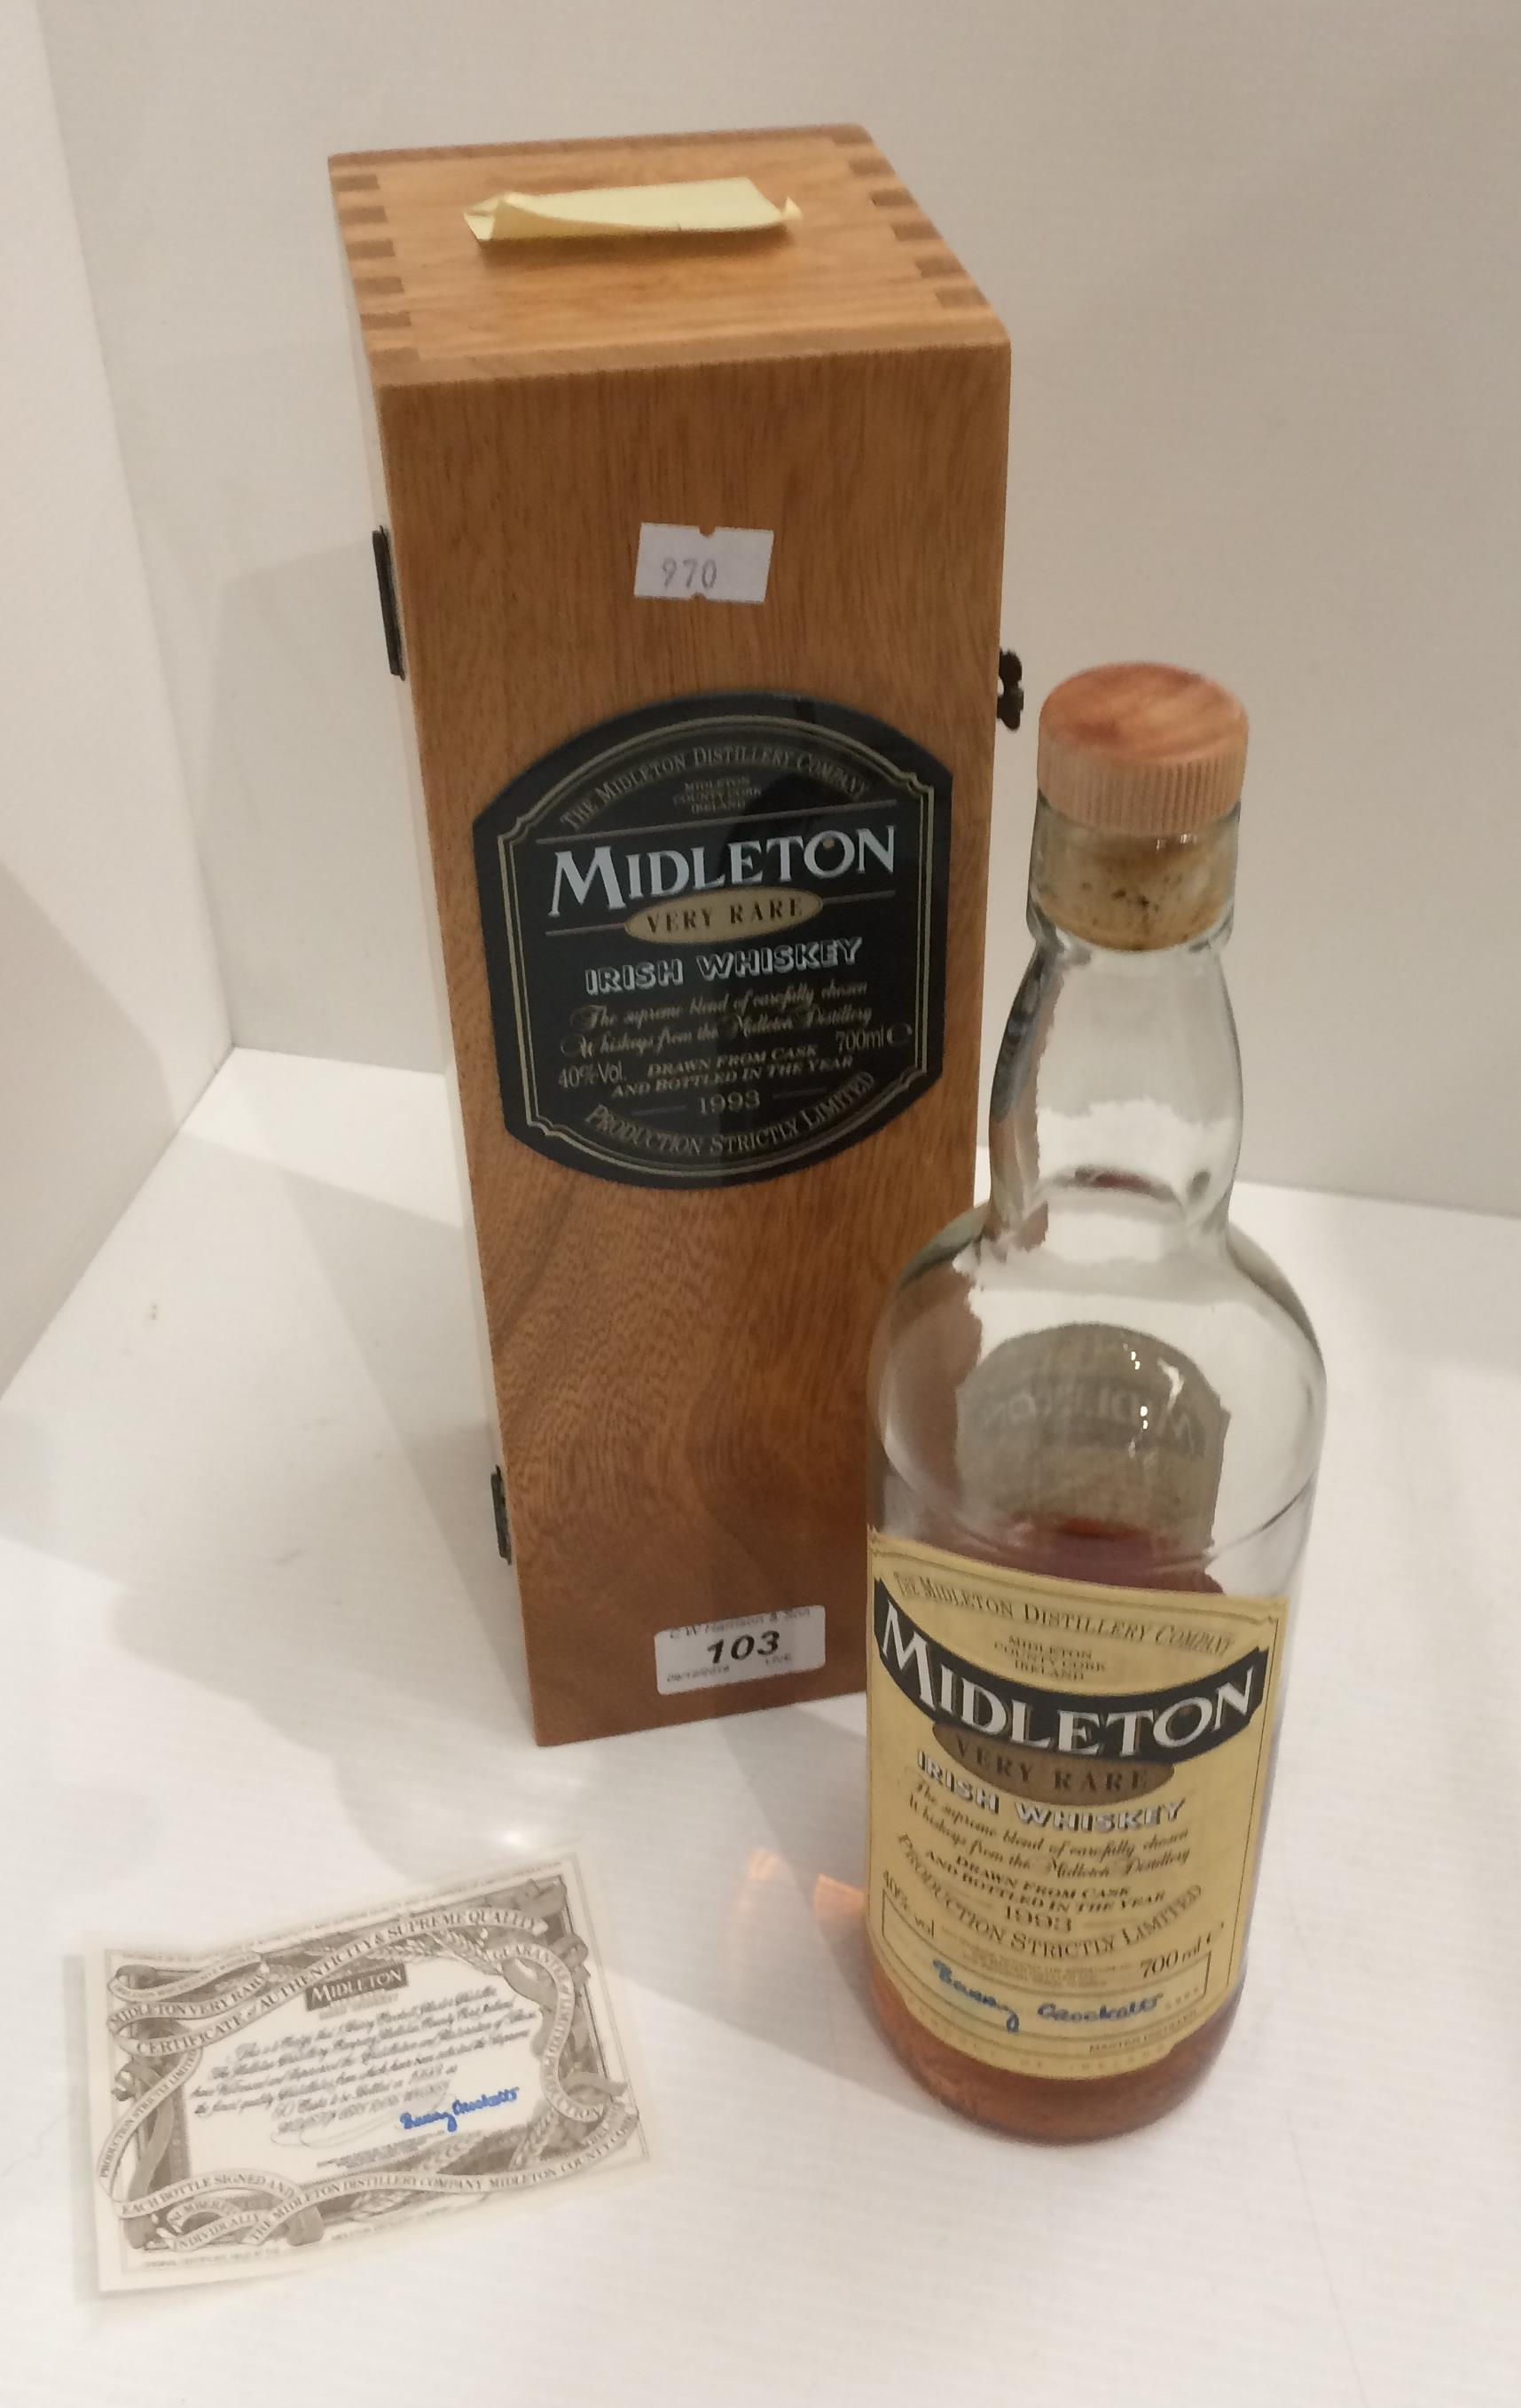 Lot 103 - A part bottle of Middleton Very Rare Irish Whiskey bottled in the year 1993,